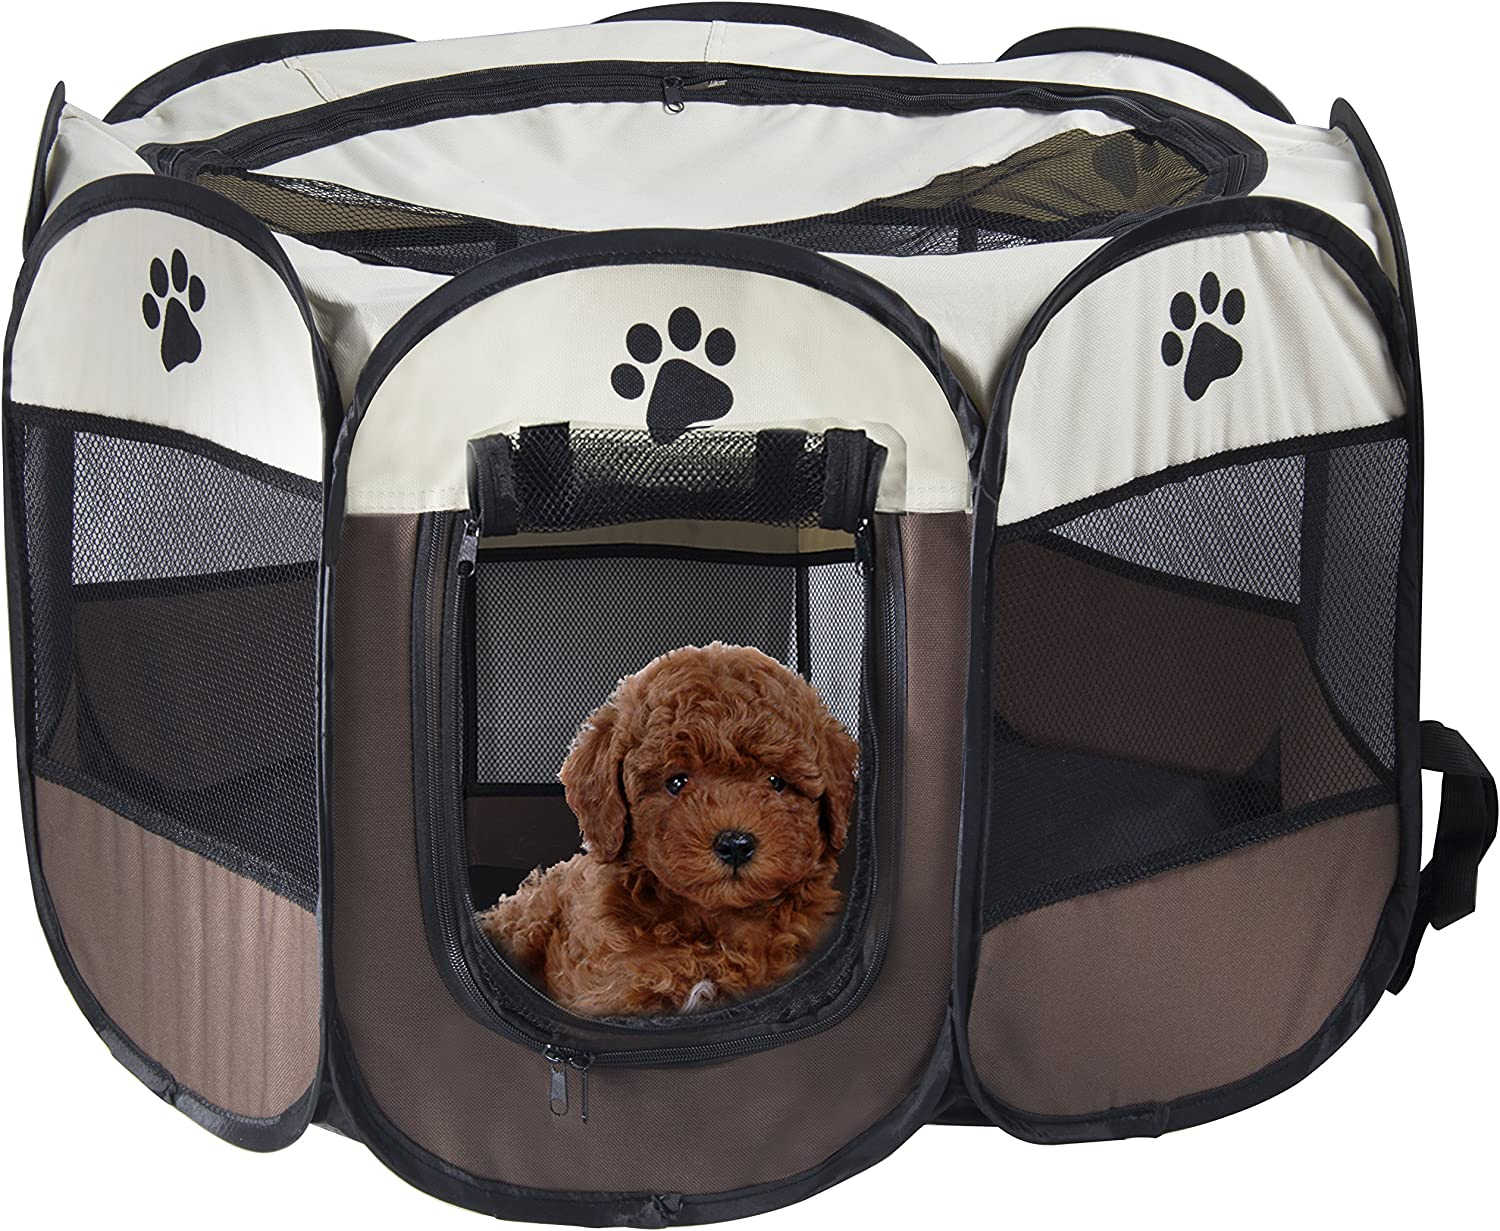 Limited time sale Playpen Dog Pen Play Pet for Dogs Pop C Puppy 70% OFF Outlet Up Portable Indoor